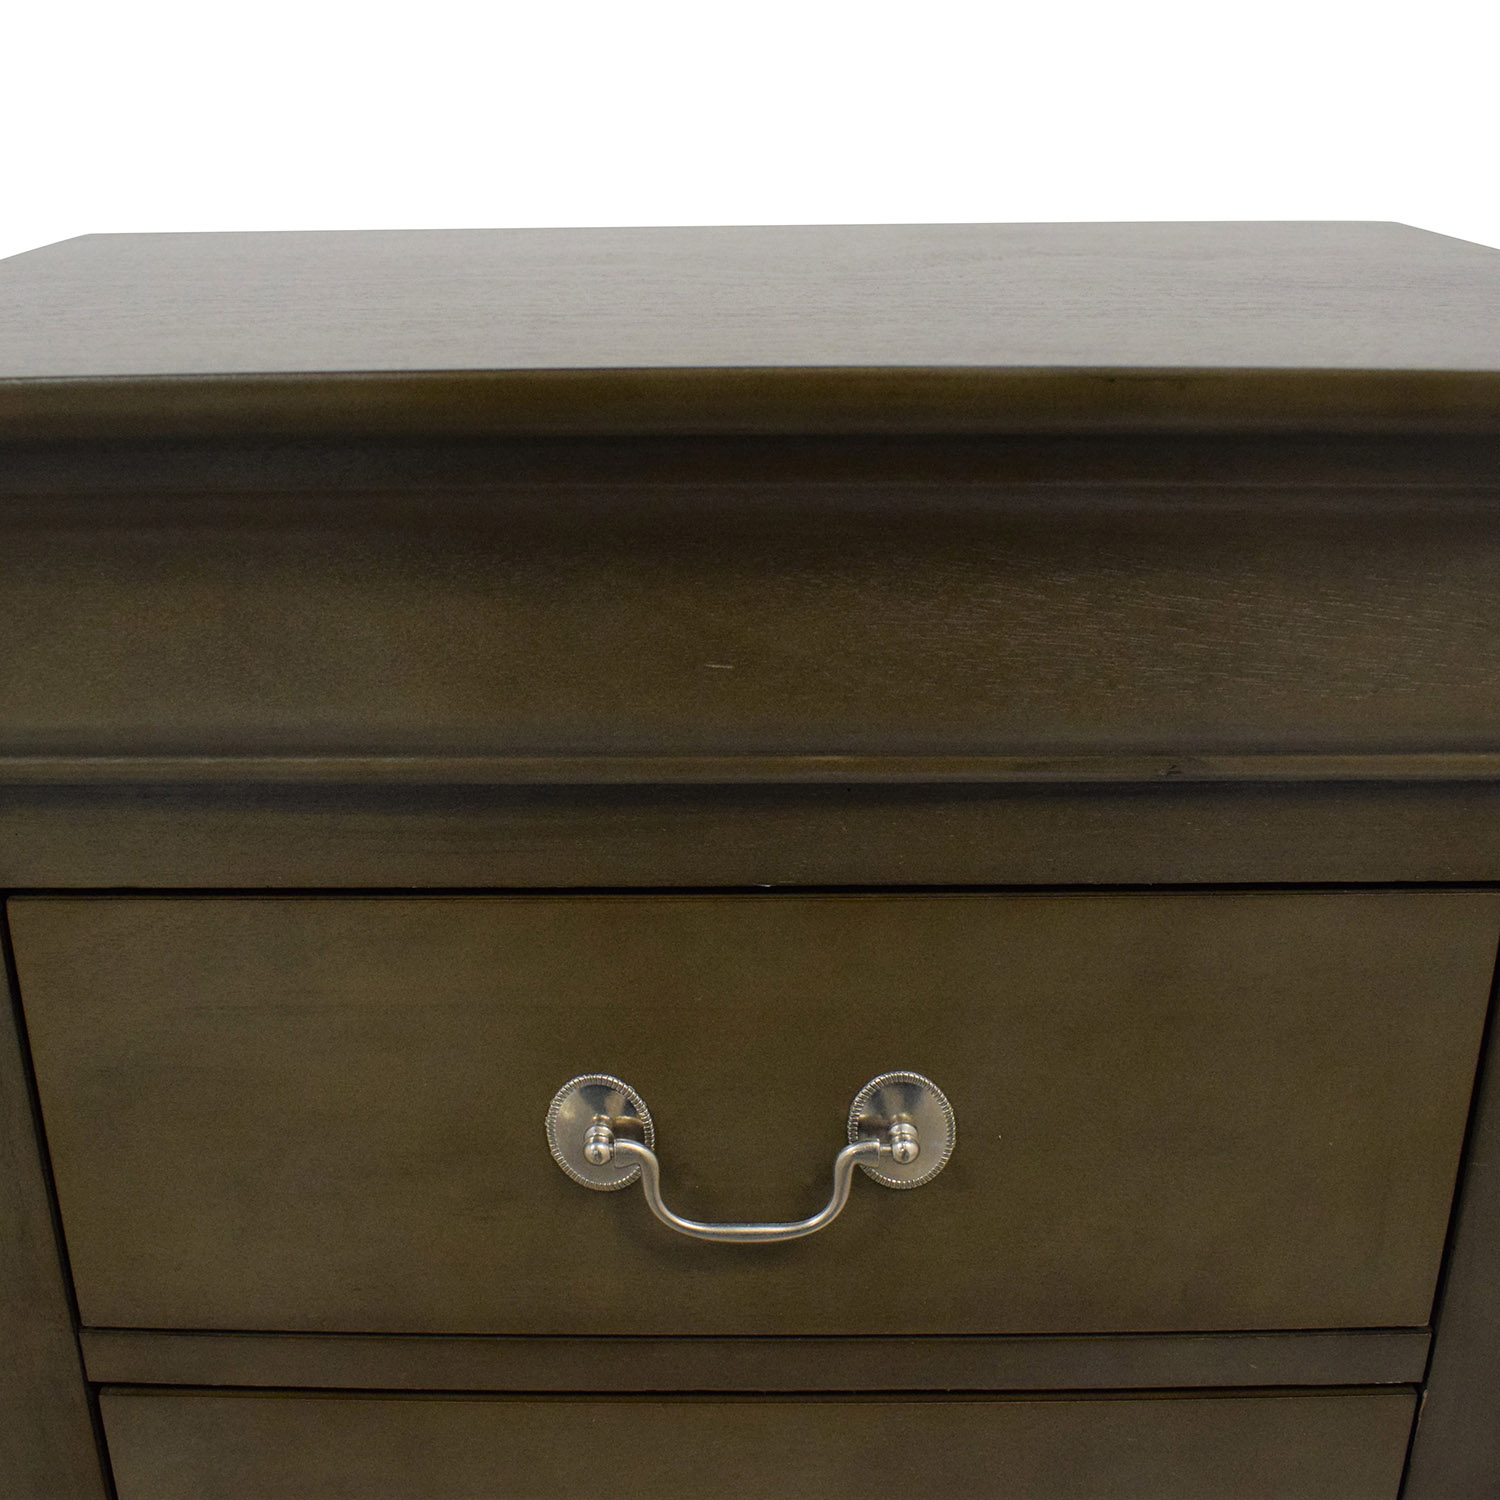 Raymour & Flanigan Raymour & Flanigan Two Drawer Nightstand dimensions